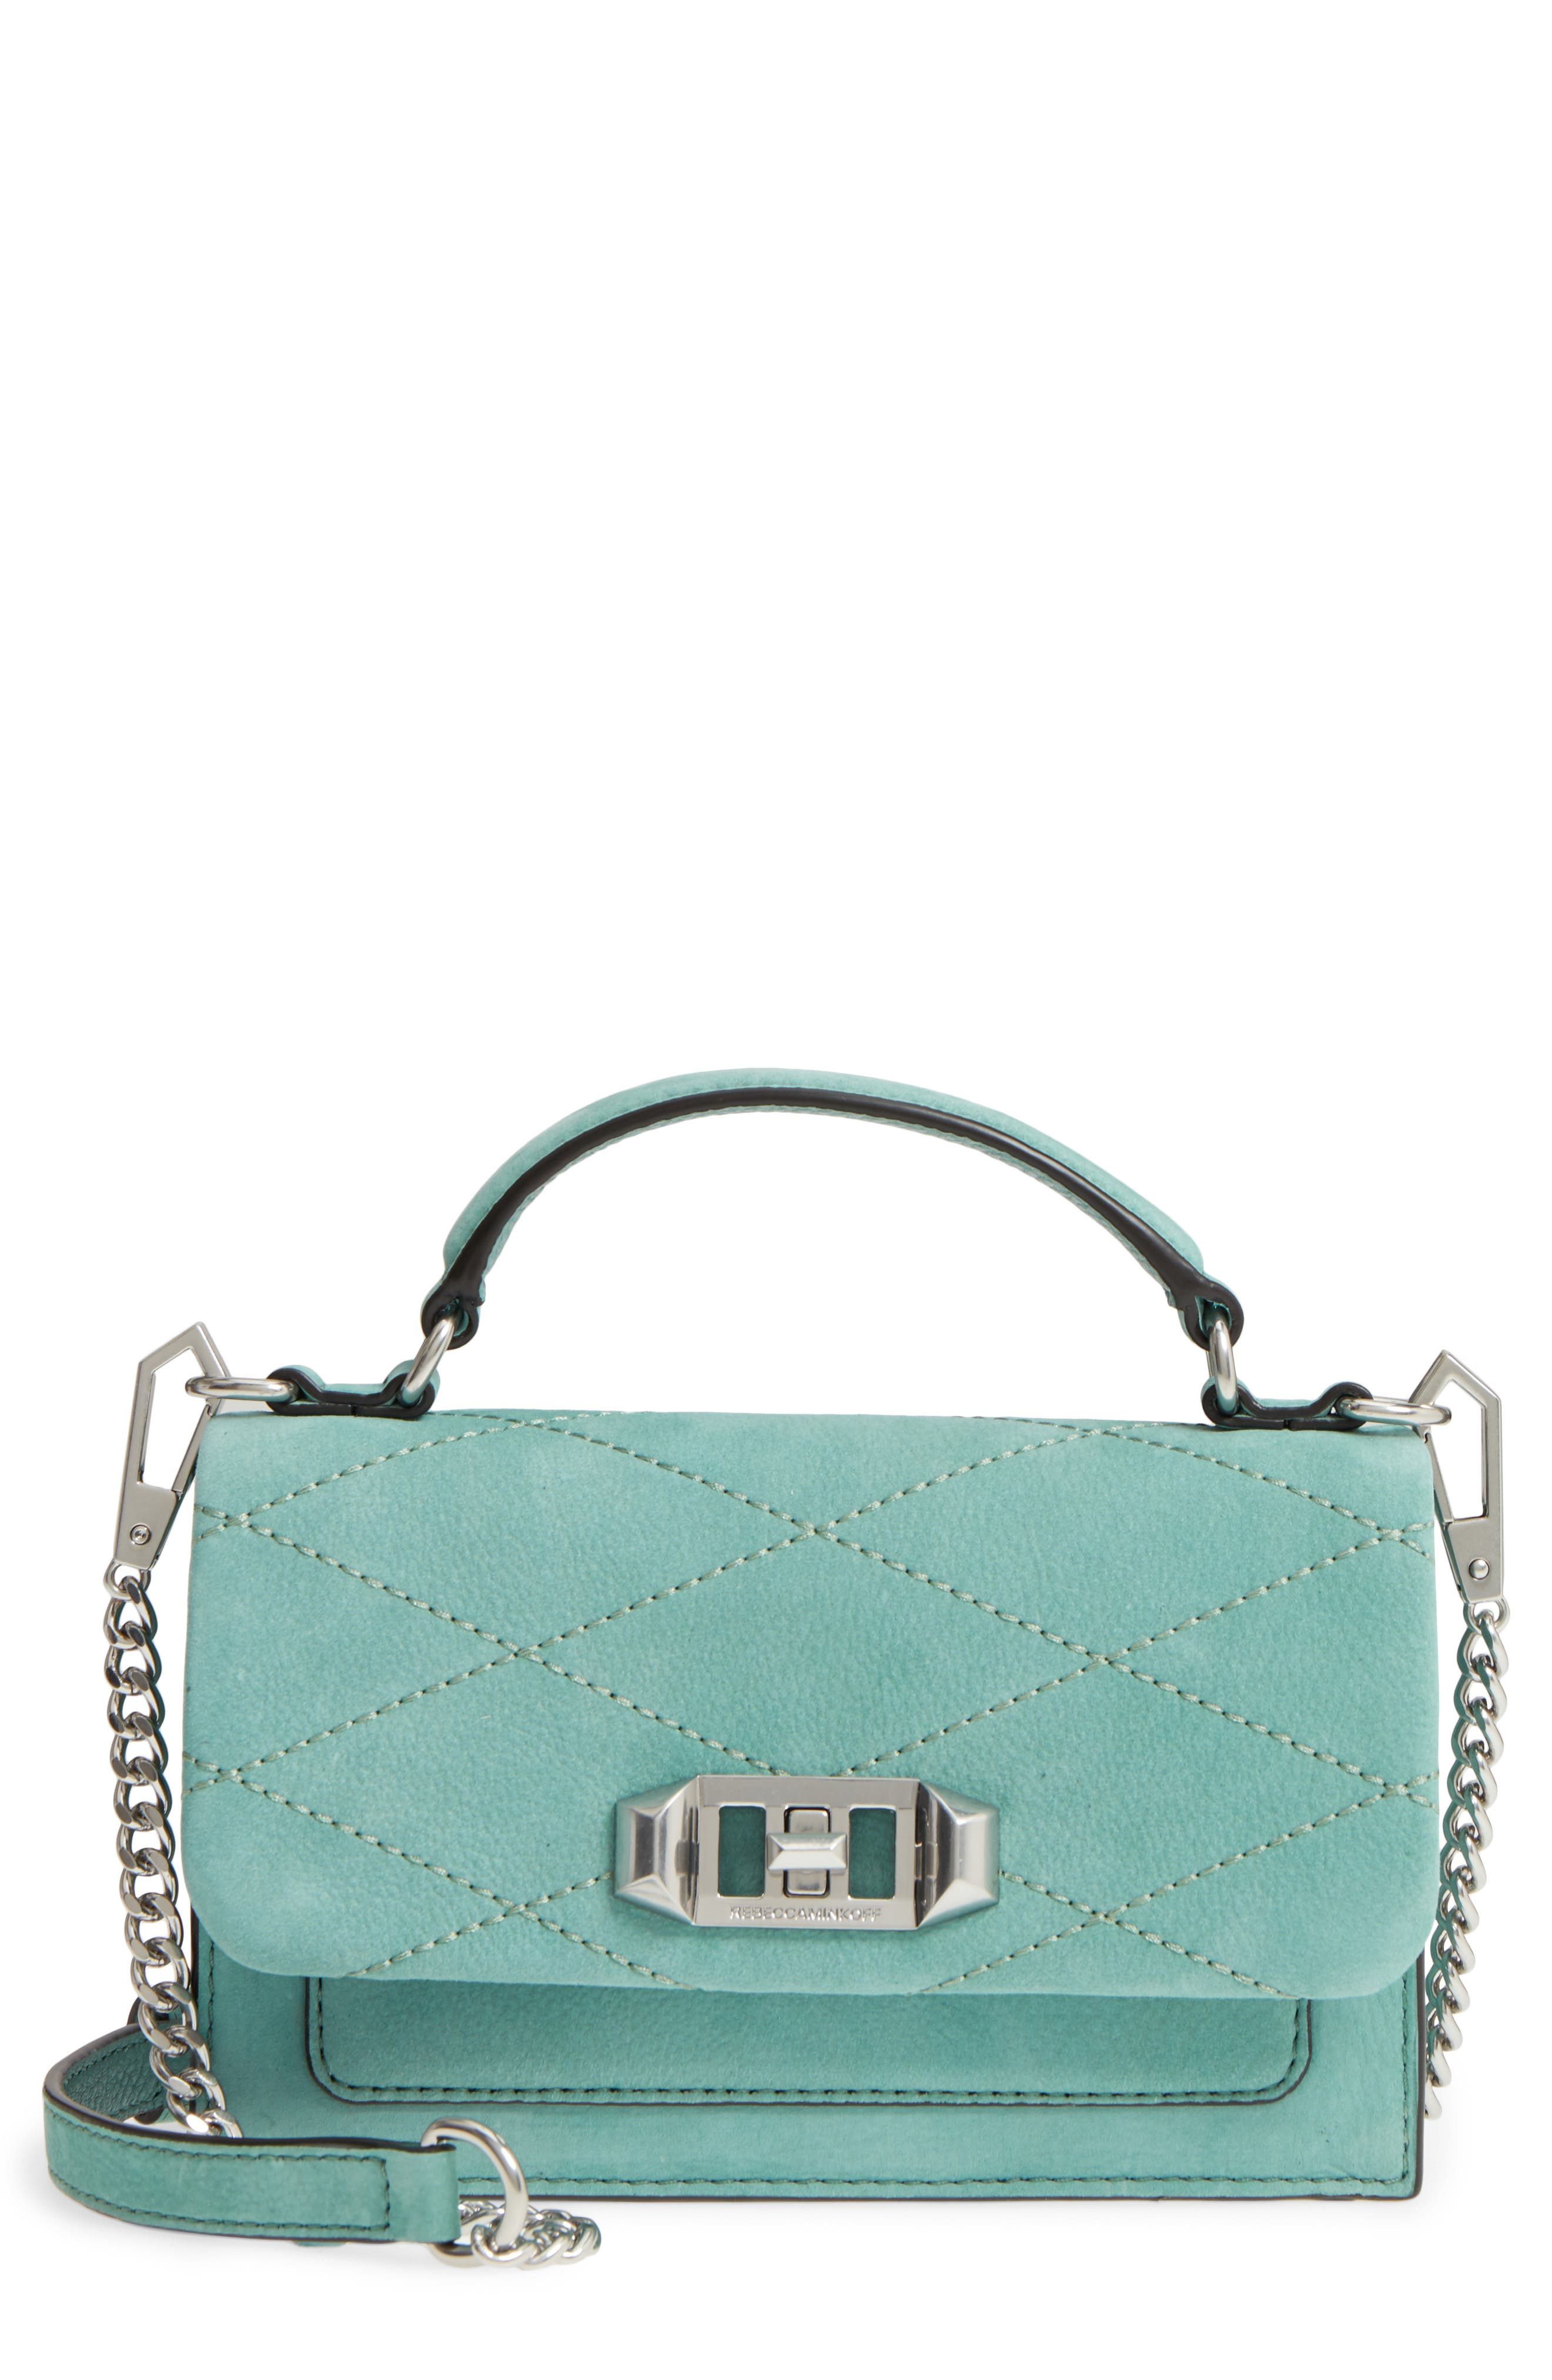 Alternate Image 1 Selected - Rebecca Minkoff Small Je T'aime Leather Crossbody Bag